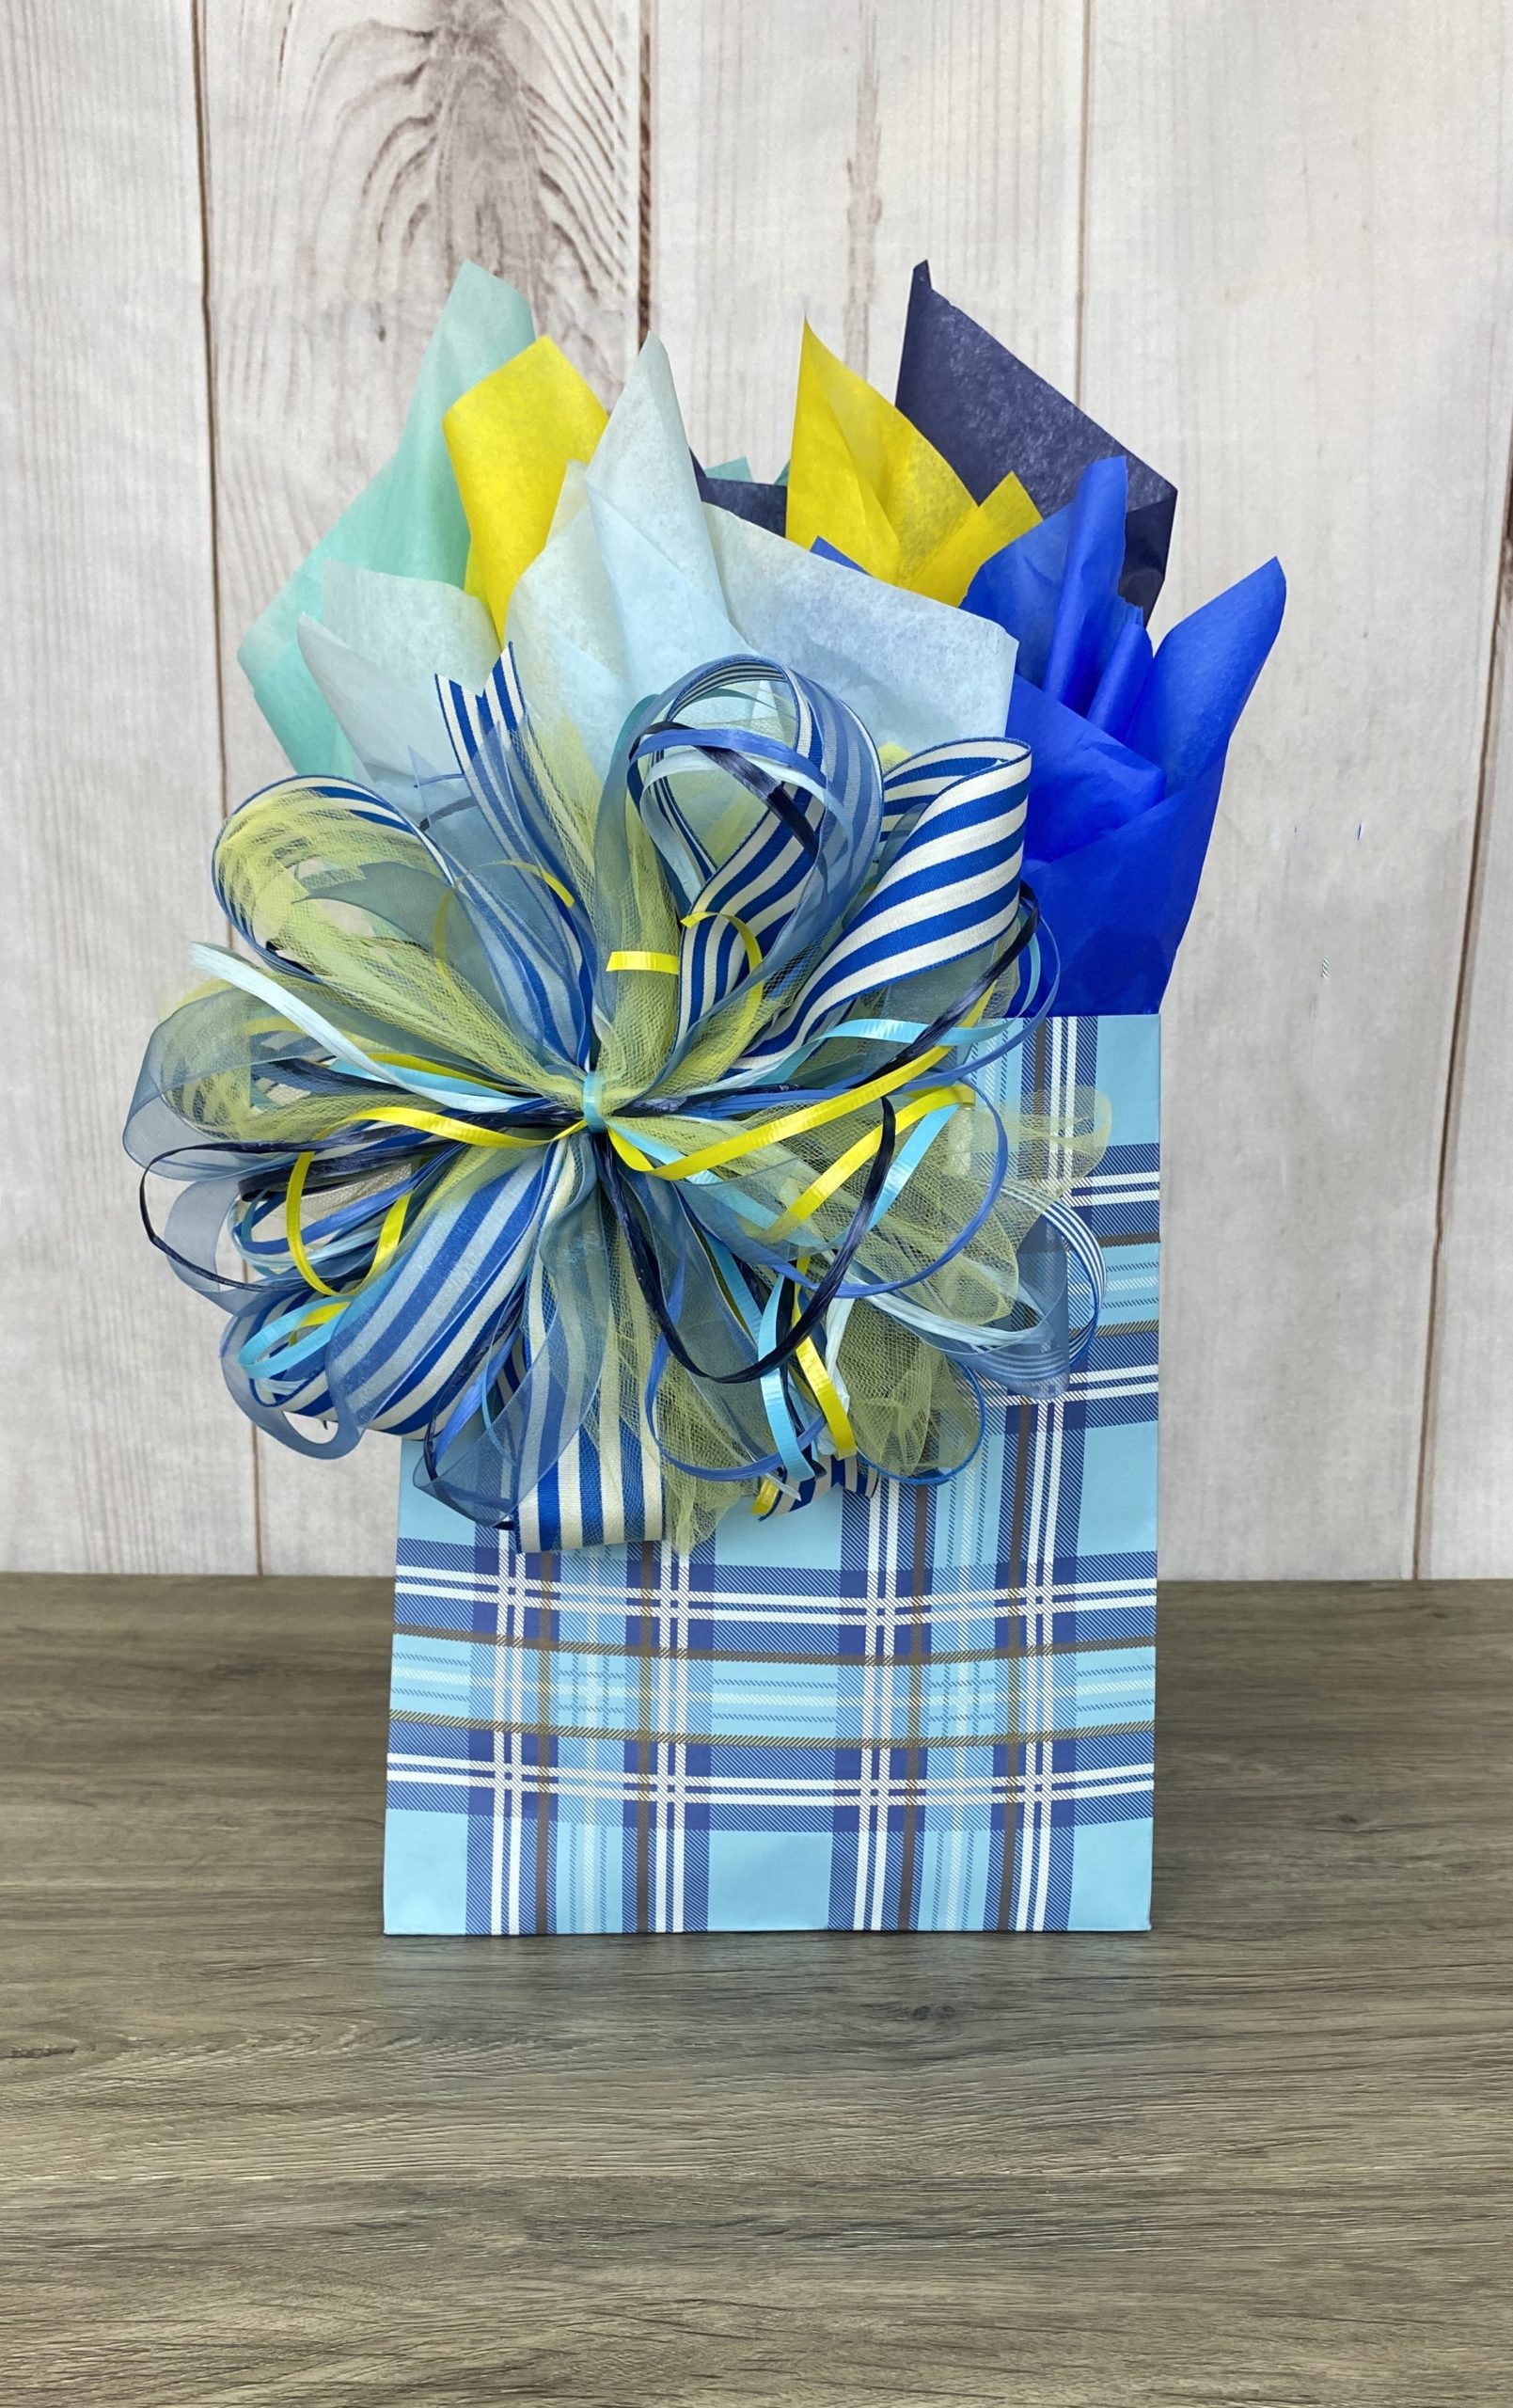 Grab & Go Gifts